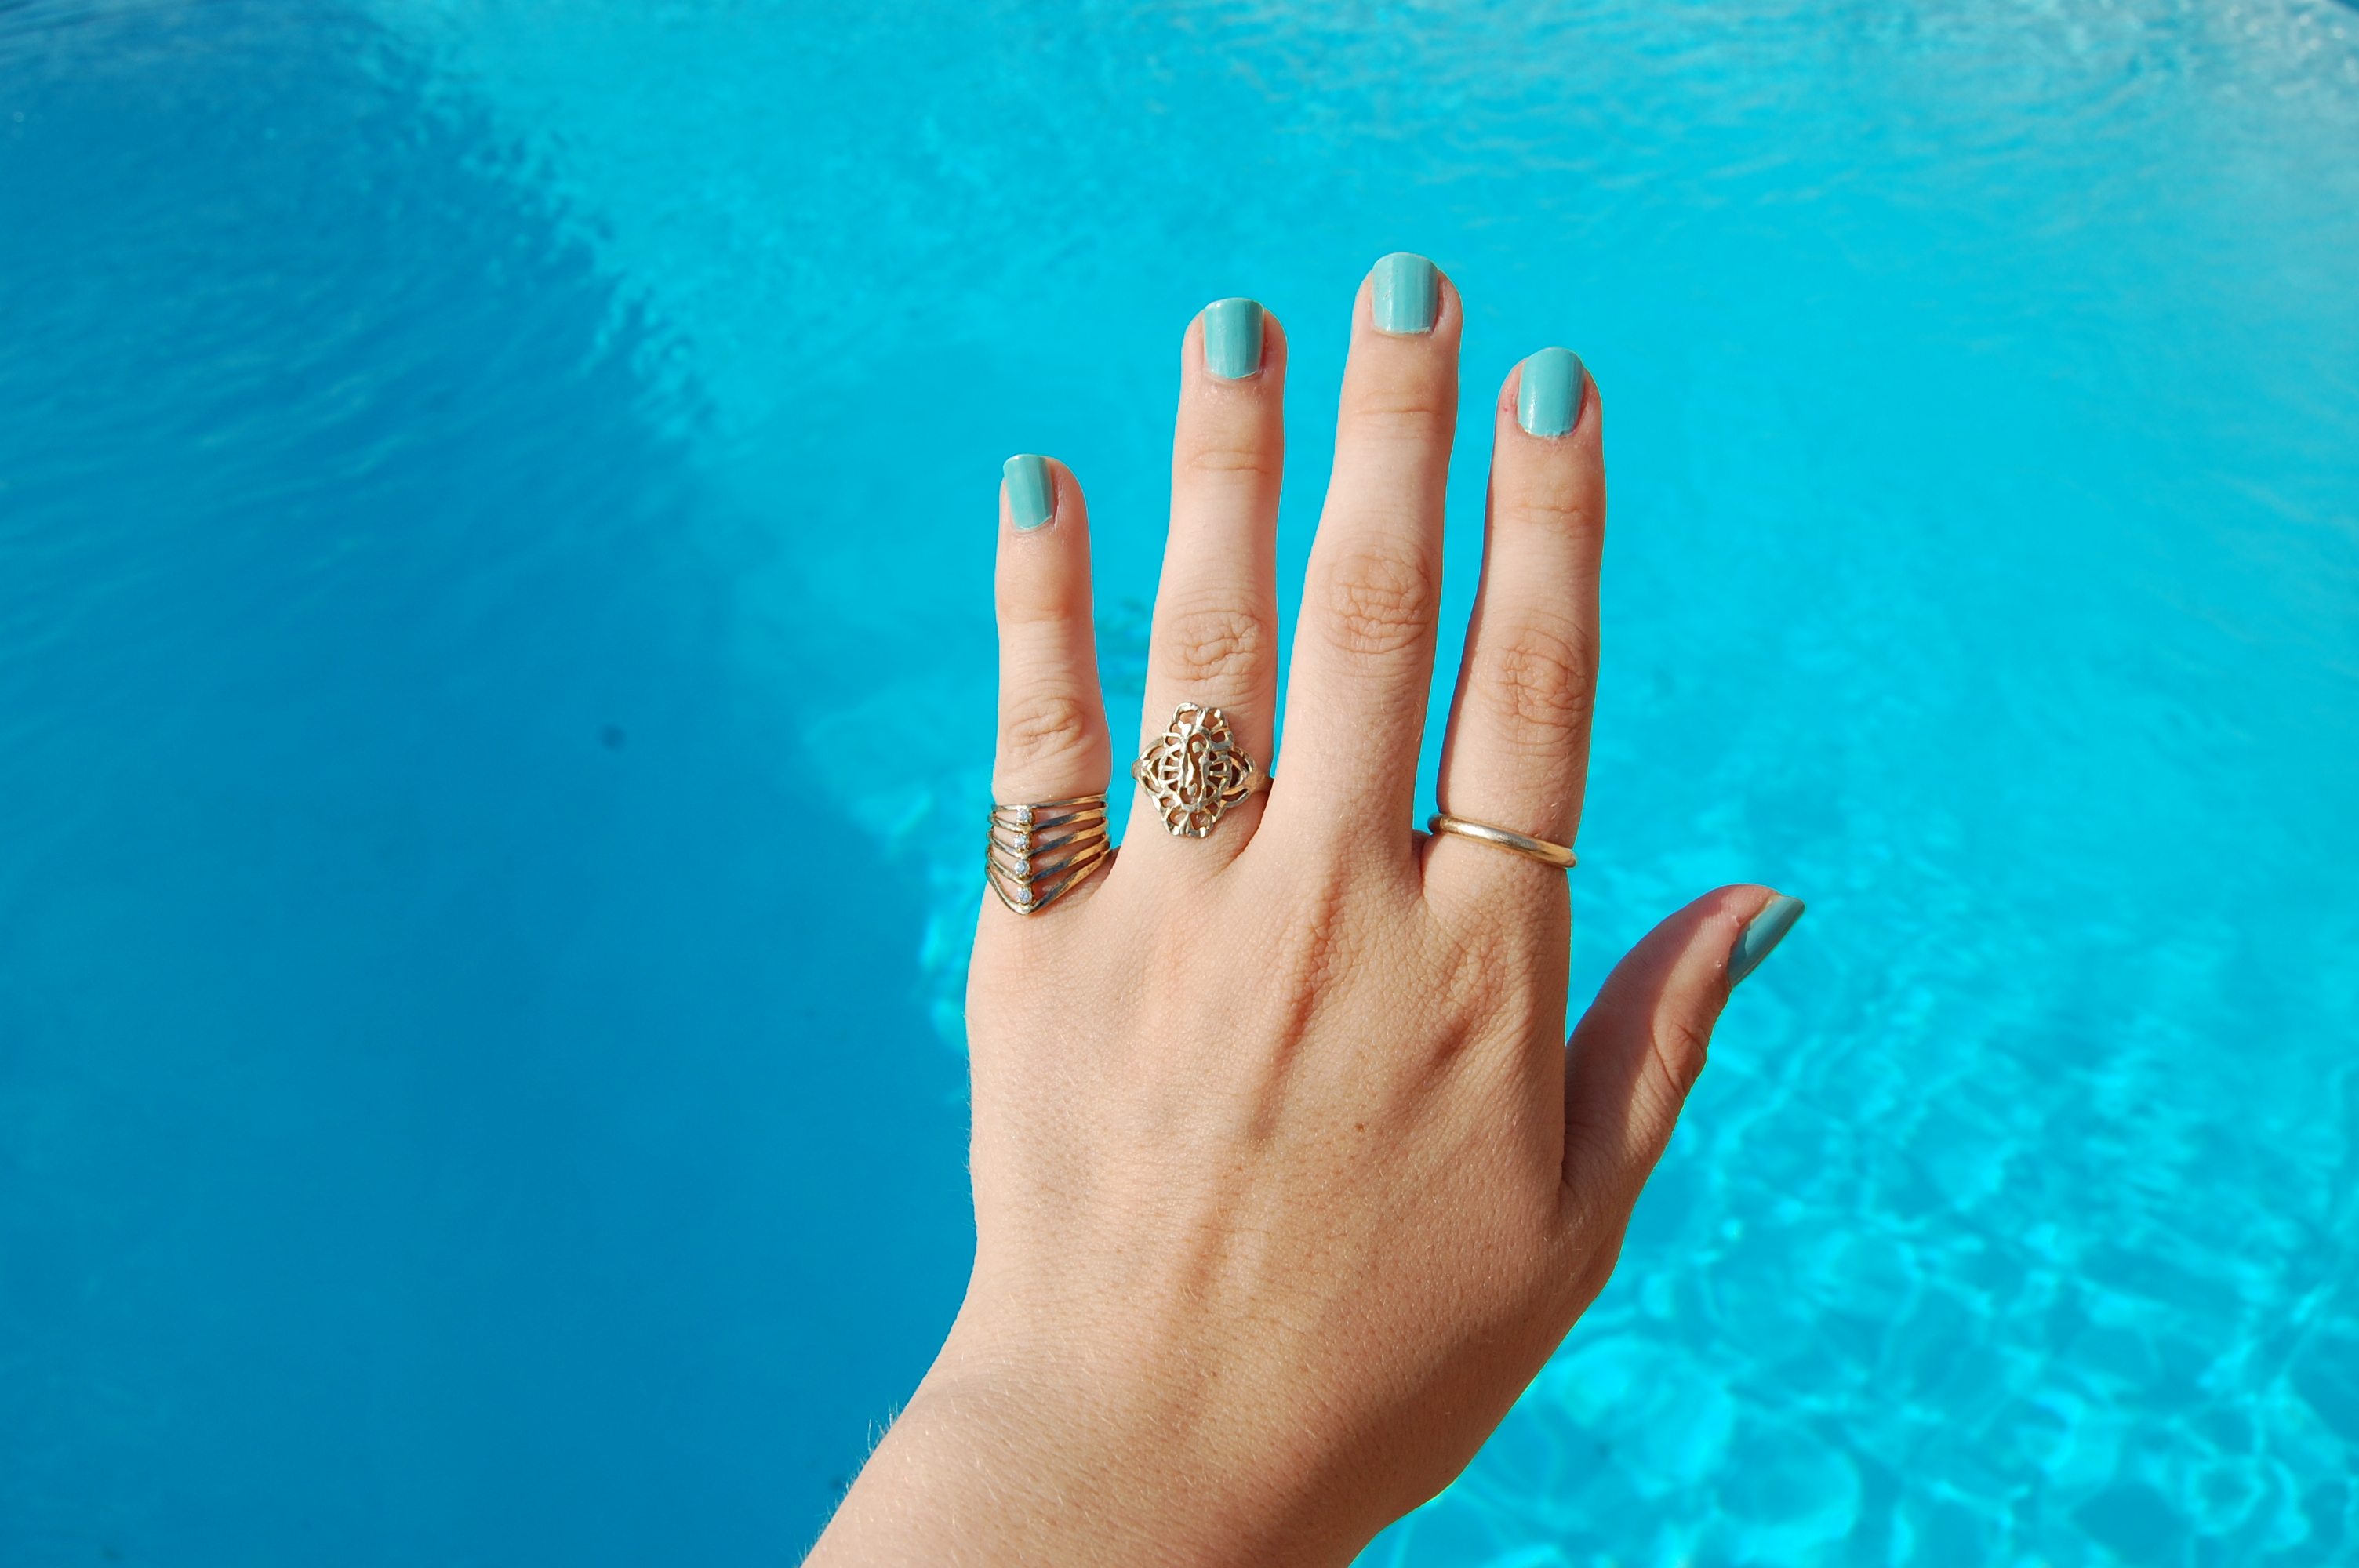 of woman your find rings thumb turn ring finger image out holding why cropped green